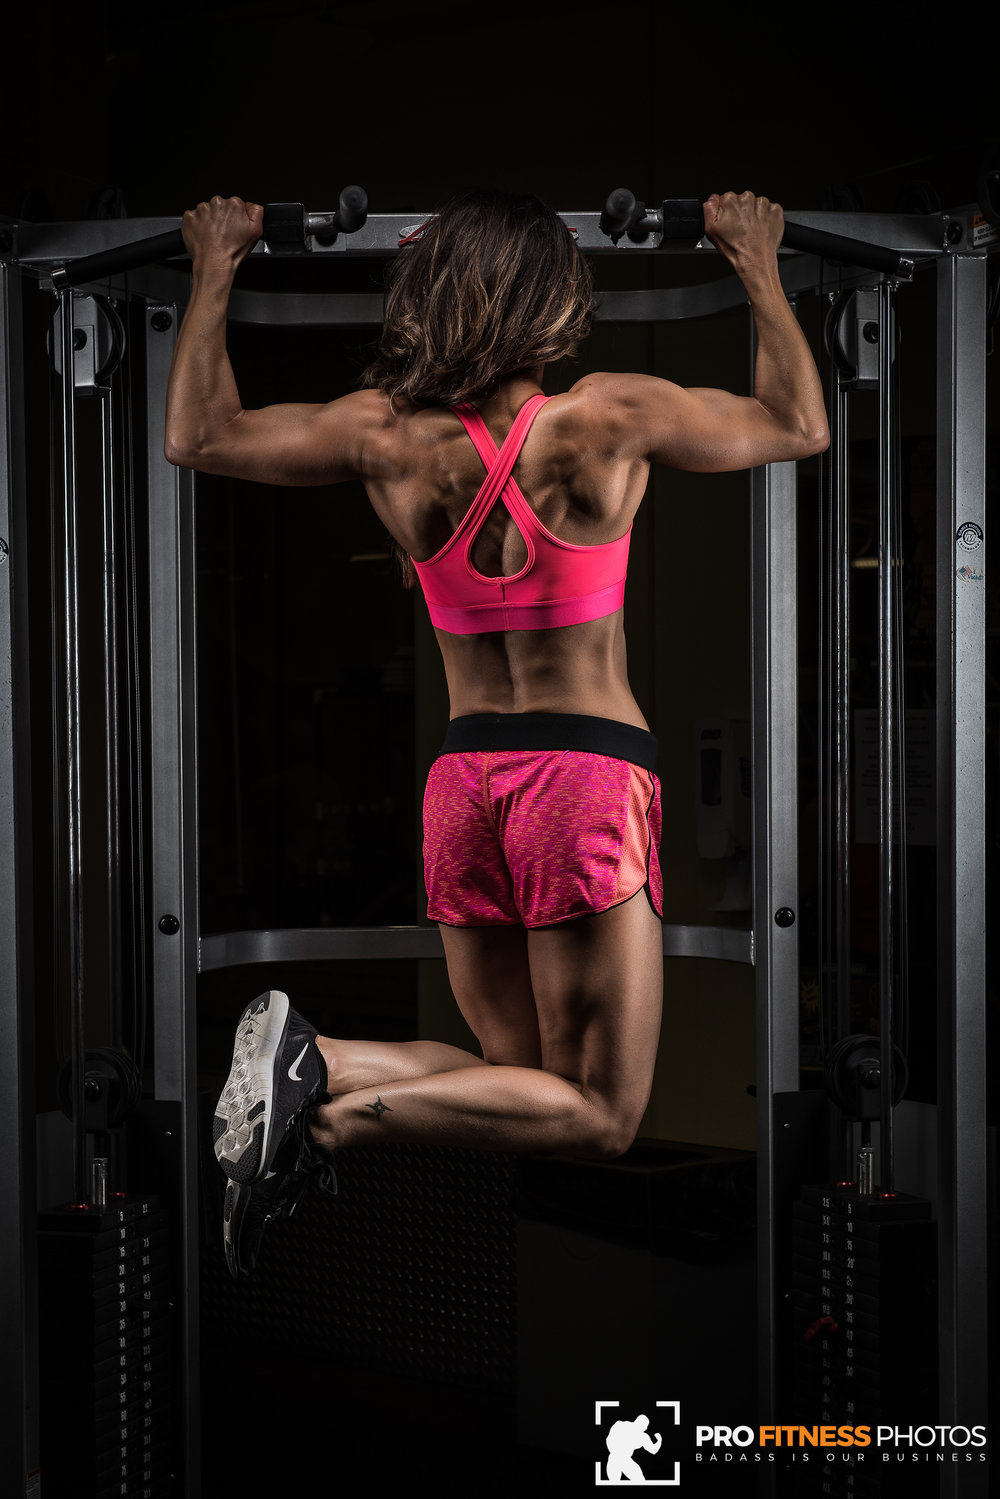 utah-fitness-photography-jennifer-02.jpg